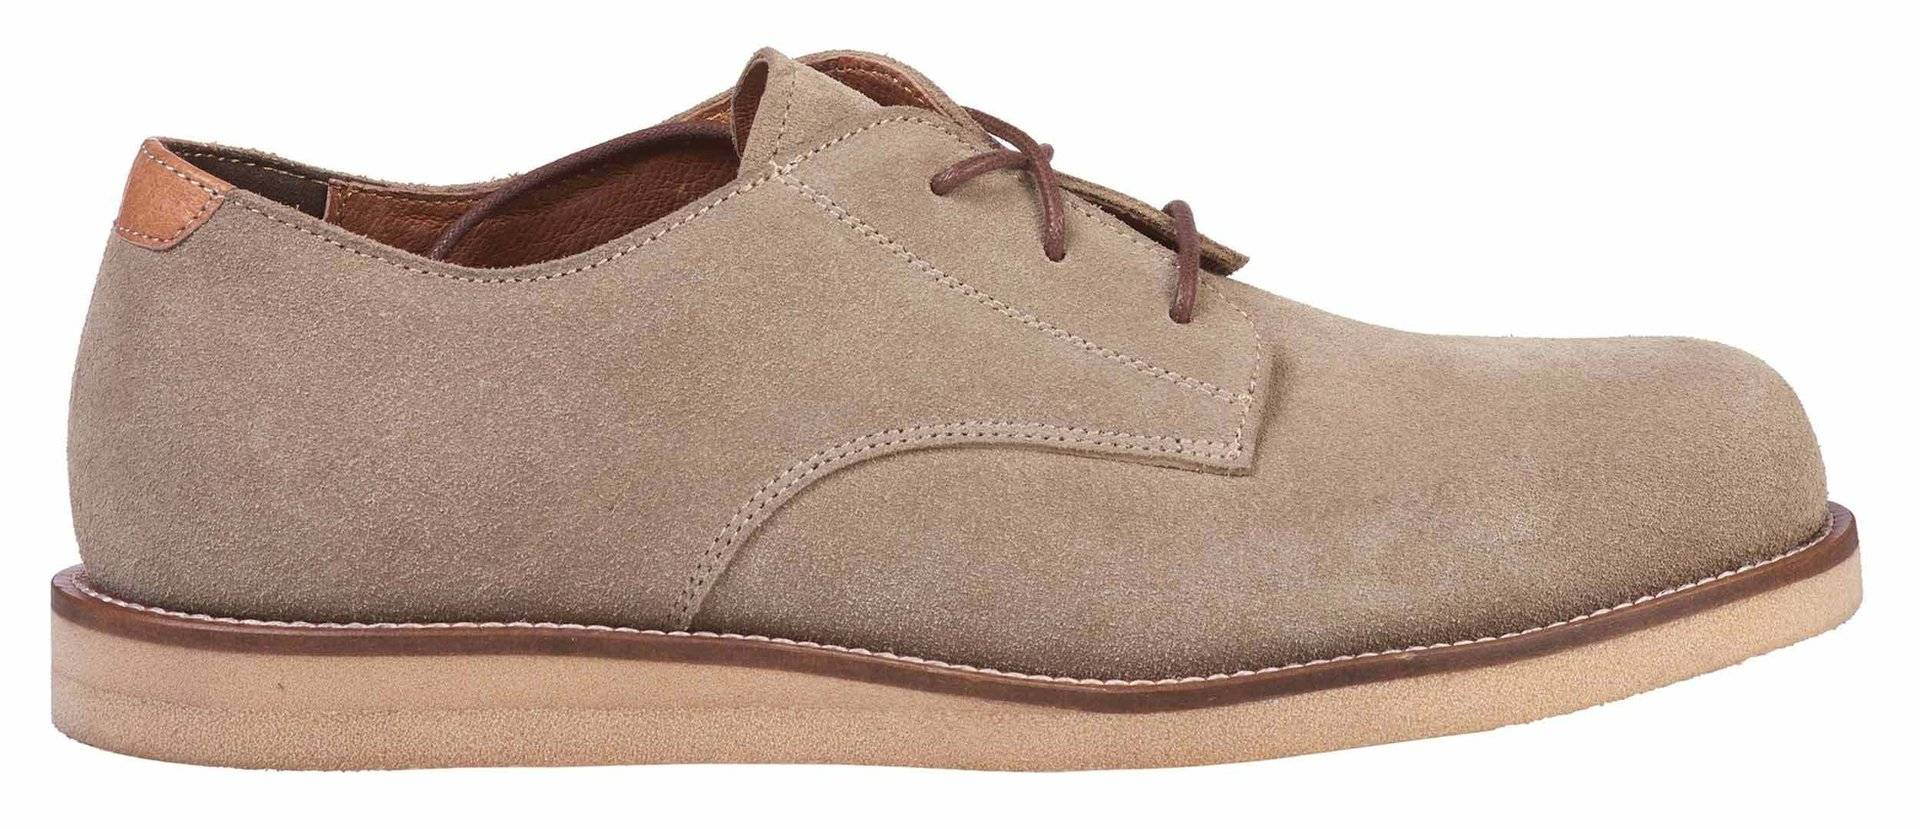 Dickies Sedona Chaussures Gris taille : 47